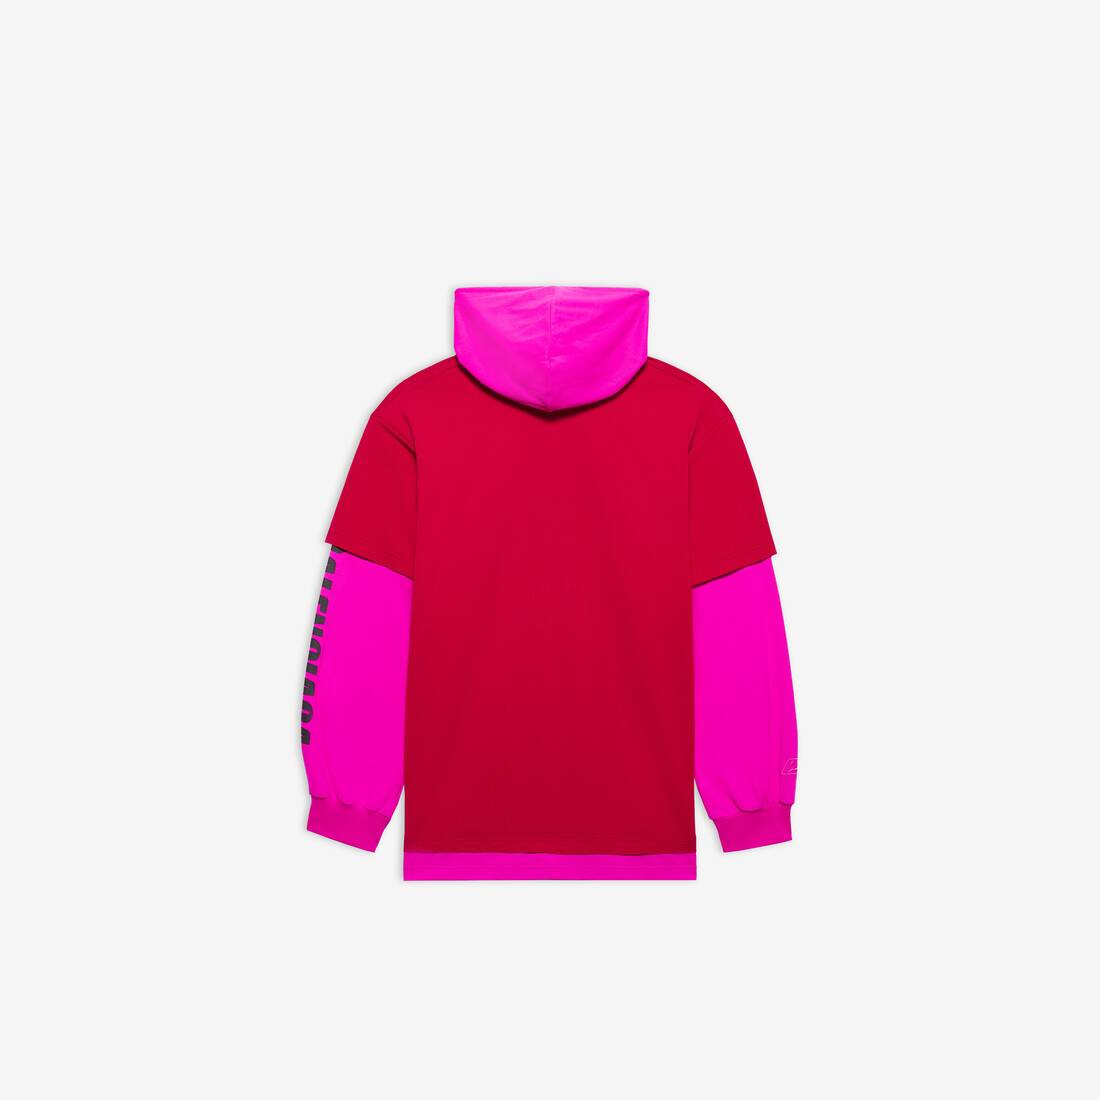 Display zoomed version of your logo here hooded t-shirt 2